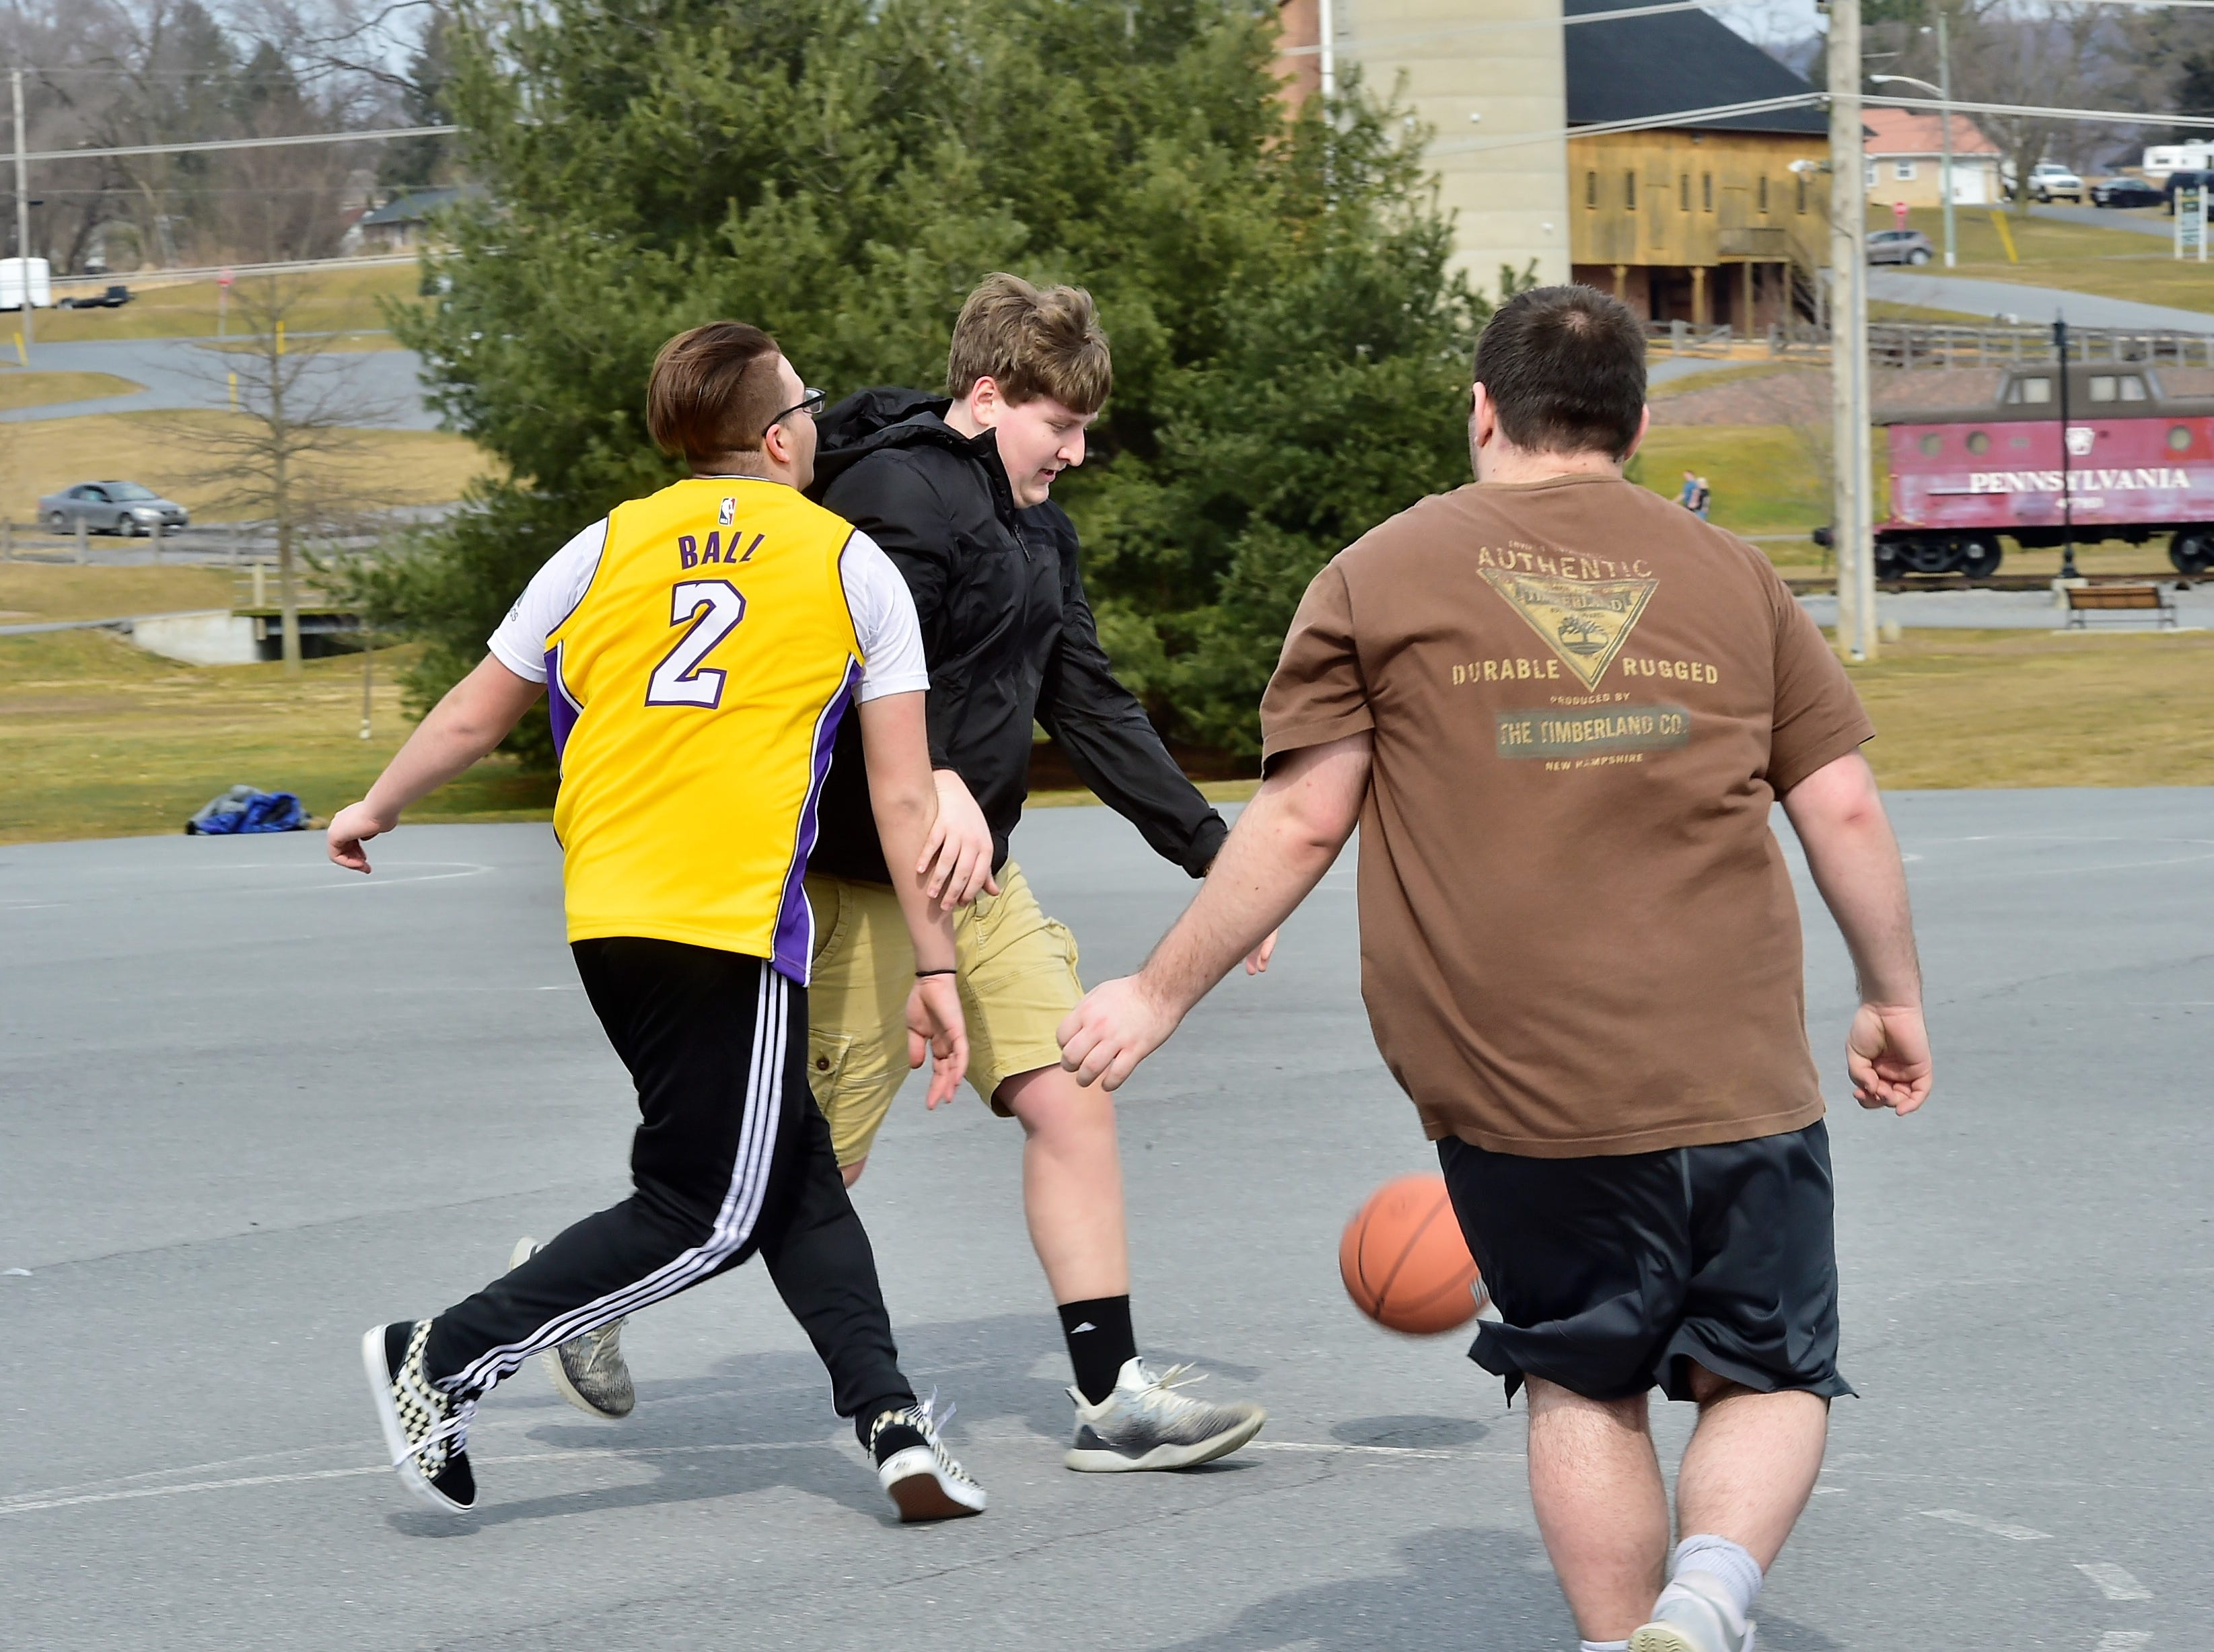 Friends from Chambersburg and Shippensburg play basketball on a warm Thursday afternoon, March 14, 2019, at Norlo Park in Fayetteville.